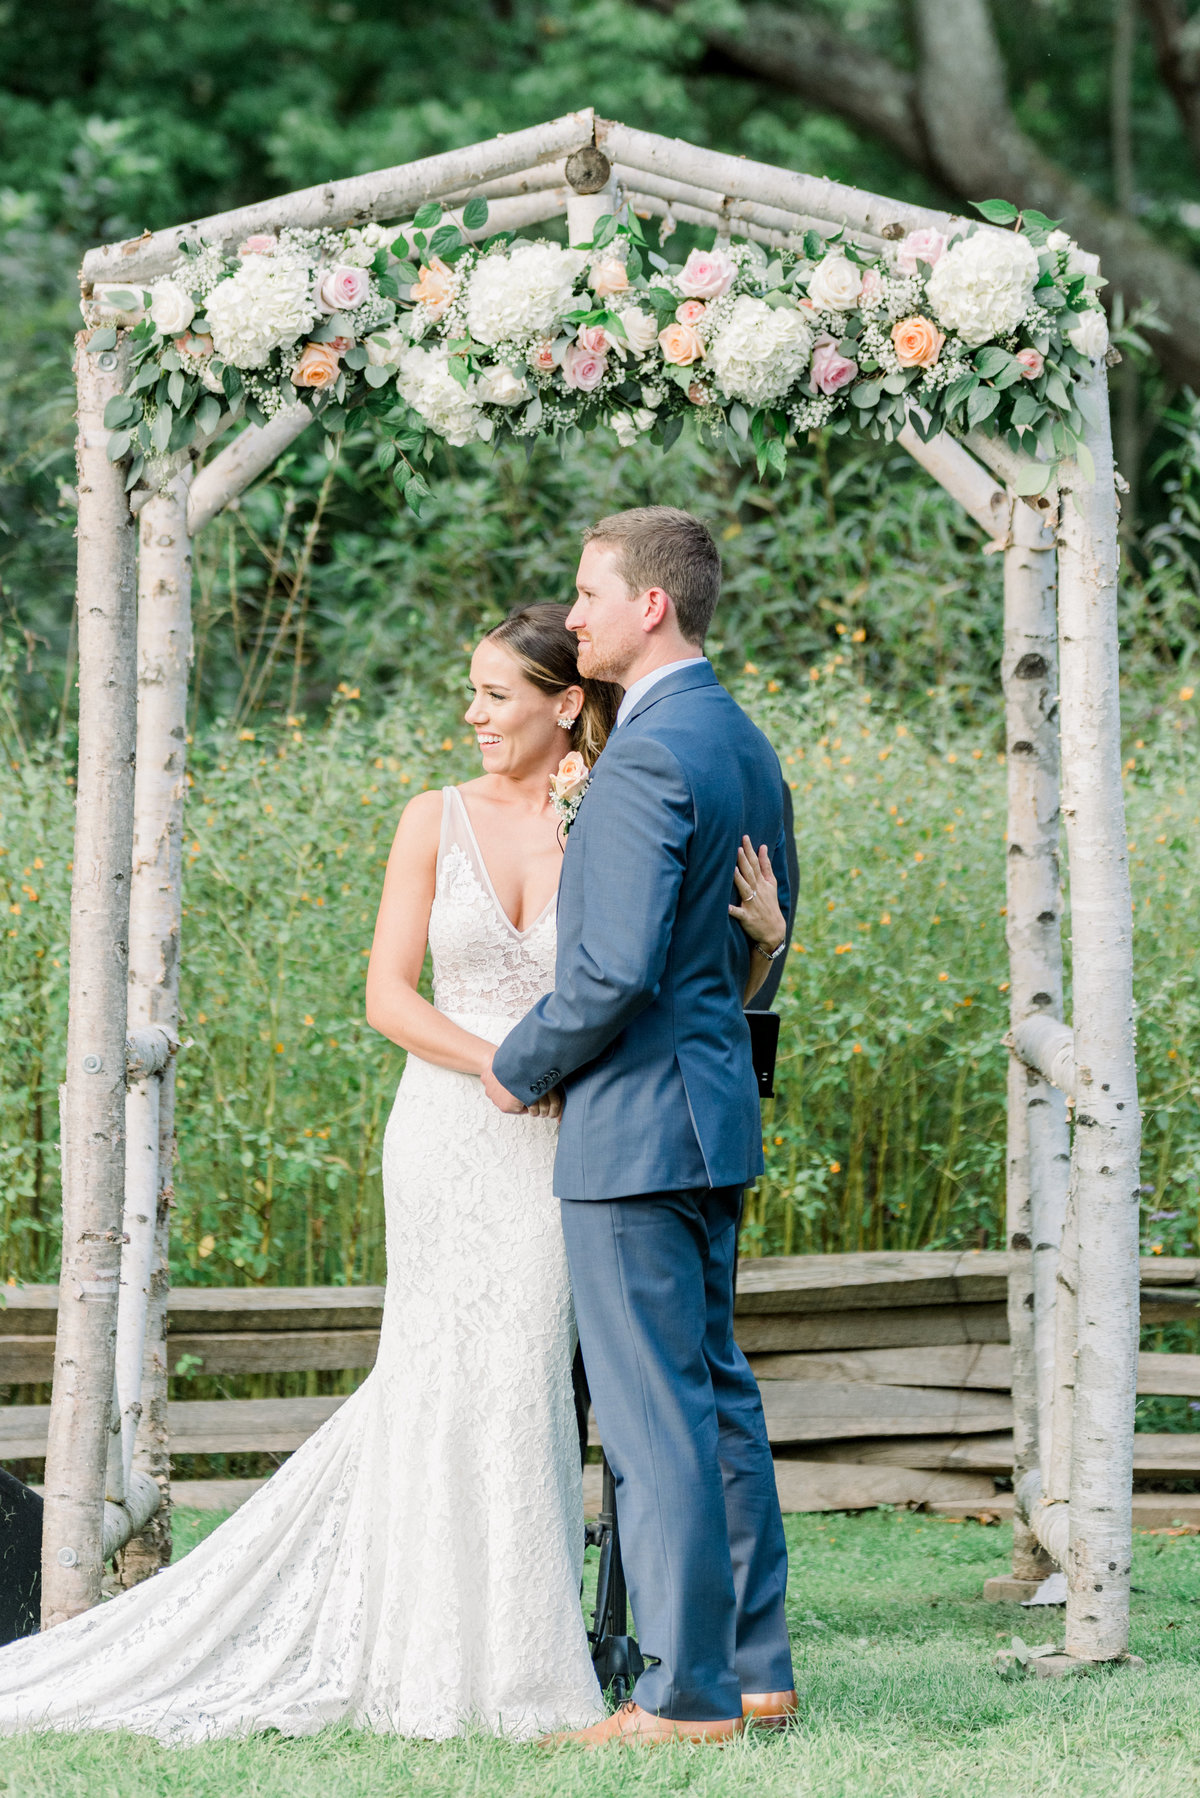 Kate and Jay s Wedding-FULL GALLERY-0609